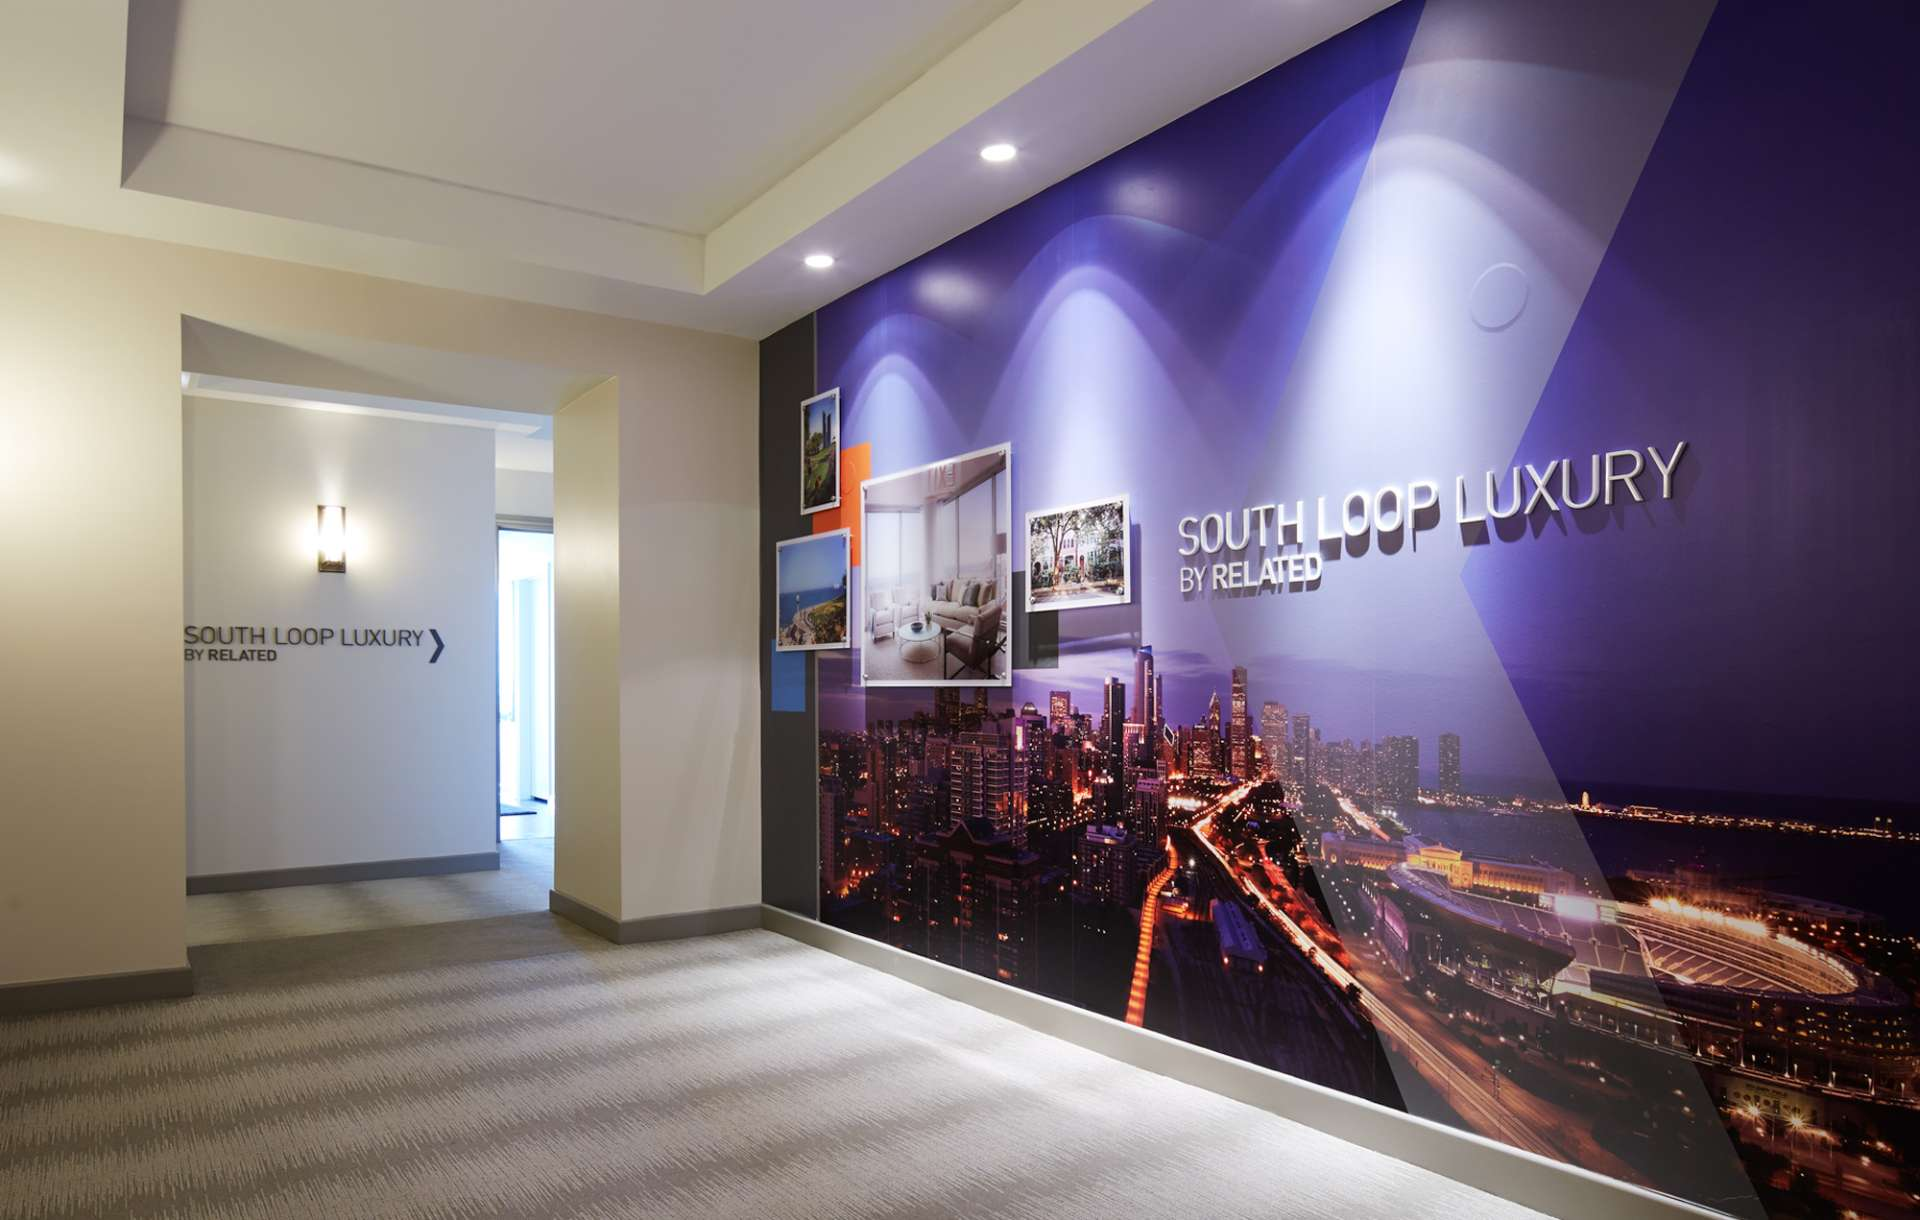 Sales Gallery in-house advertising designed for South Loop Luxury by Related